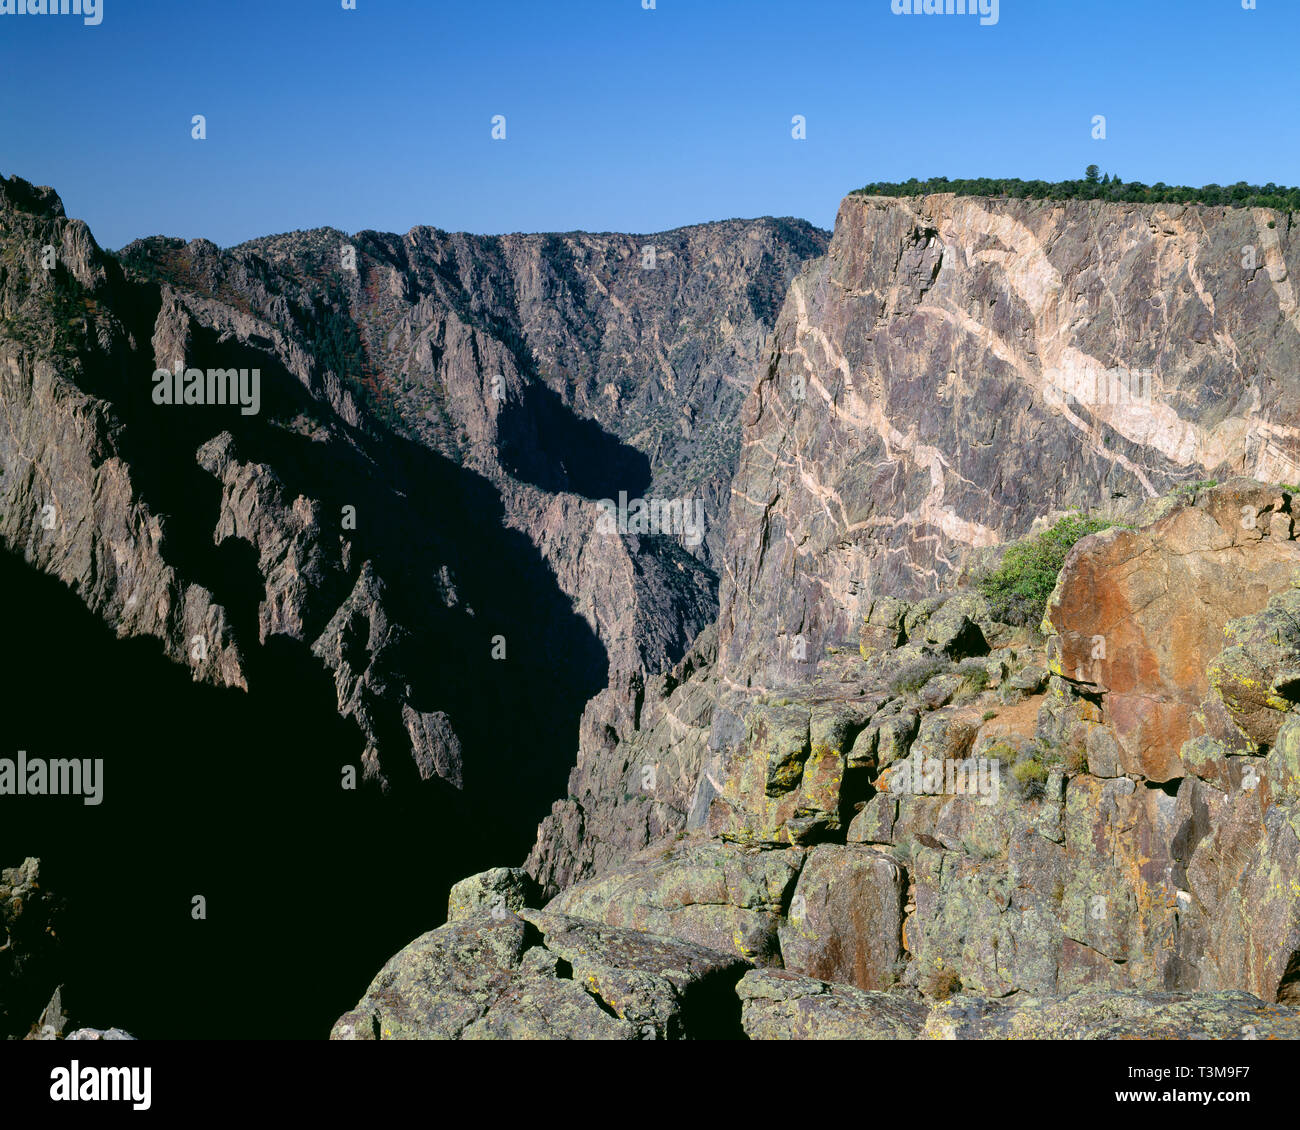 USA, Colorado, Black Canyon of the Gunnison National Park, Intrusions of molten granite form bands in Precambrian cliffs of the Painted Wall. - Stock Image